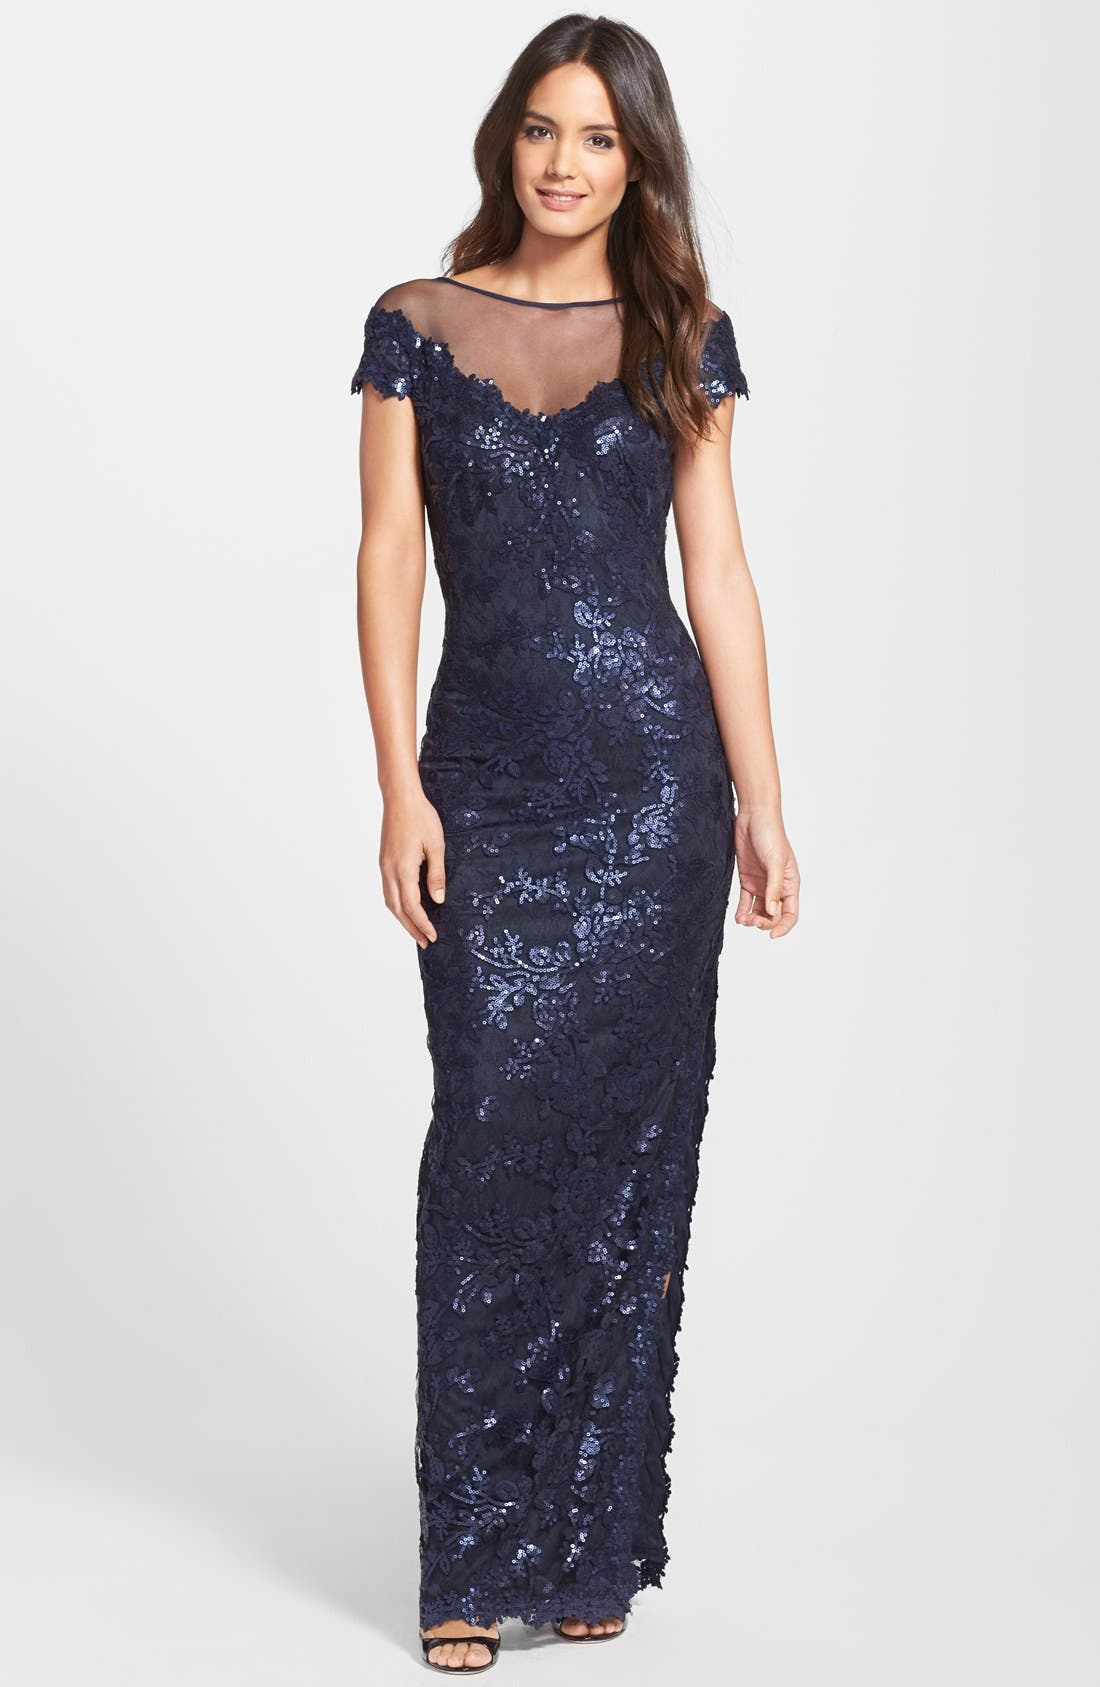 Main Image - Tadashi Shoji Cap Sleeve Sequin Lace Embroidered Gown